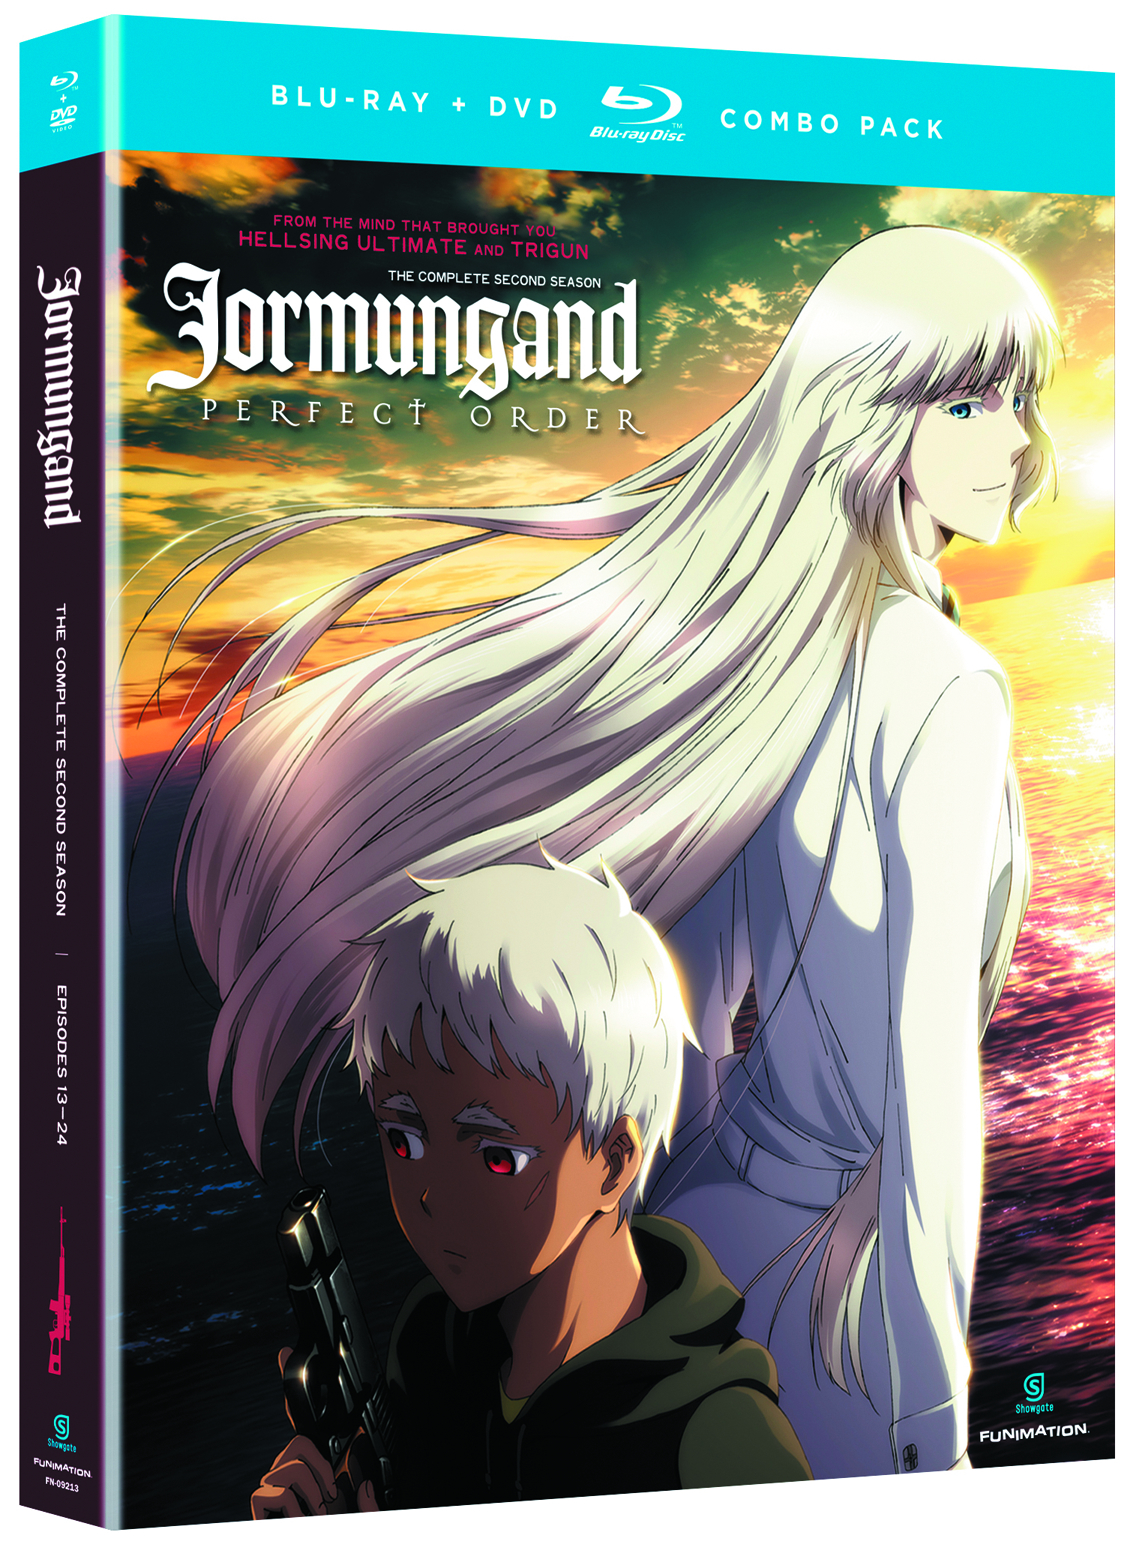 JORMUNGAND BD + DVD SEA 02